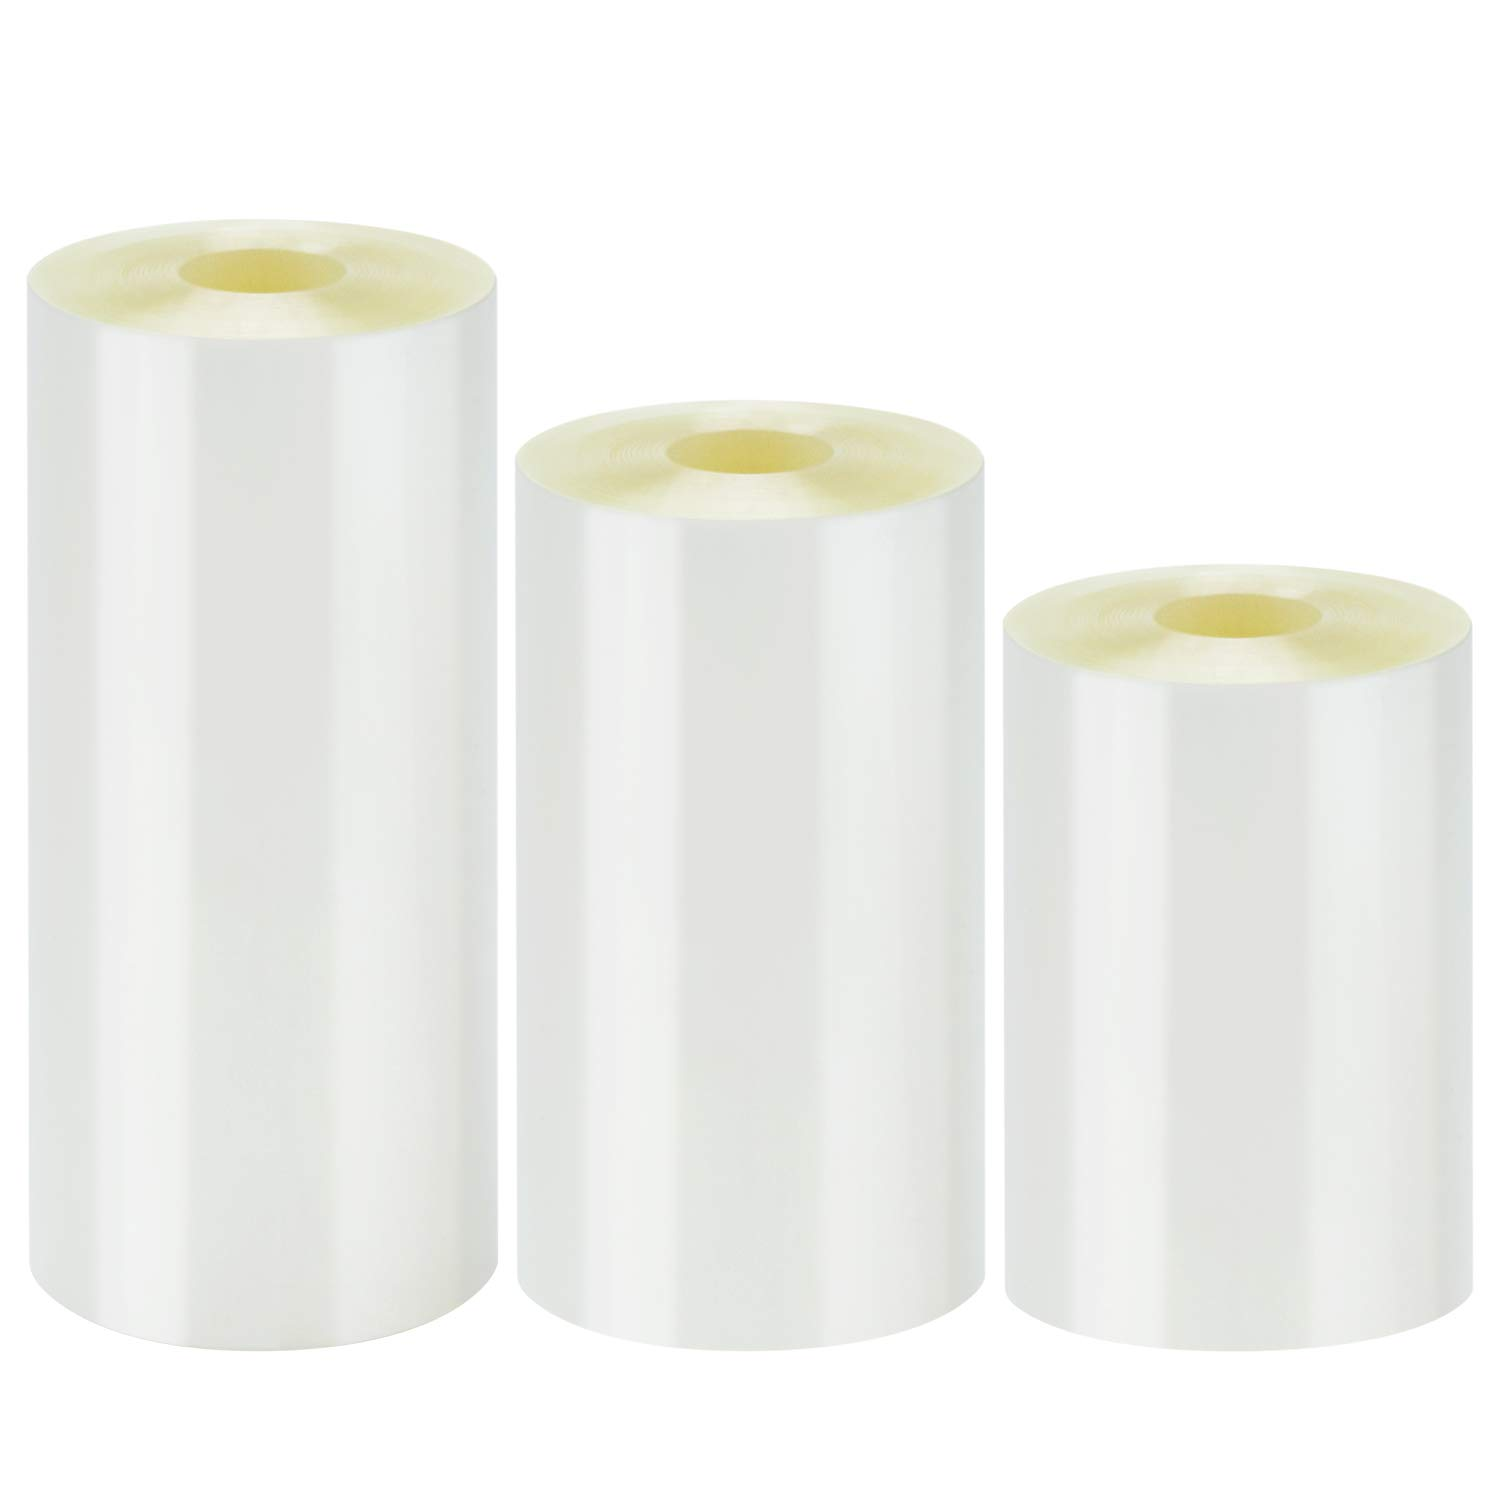 Elcoho 3 Rolls Hard Cake Collars Mousse Cake Collar Clear Cake Strips Rolls for Chocolate Mousse Cake Baking or Decoration, 3 Sizes (2.4 x 394 inch /3.15 x 394 inch /3.93 x 394 inch) (Mixed Sizes)